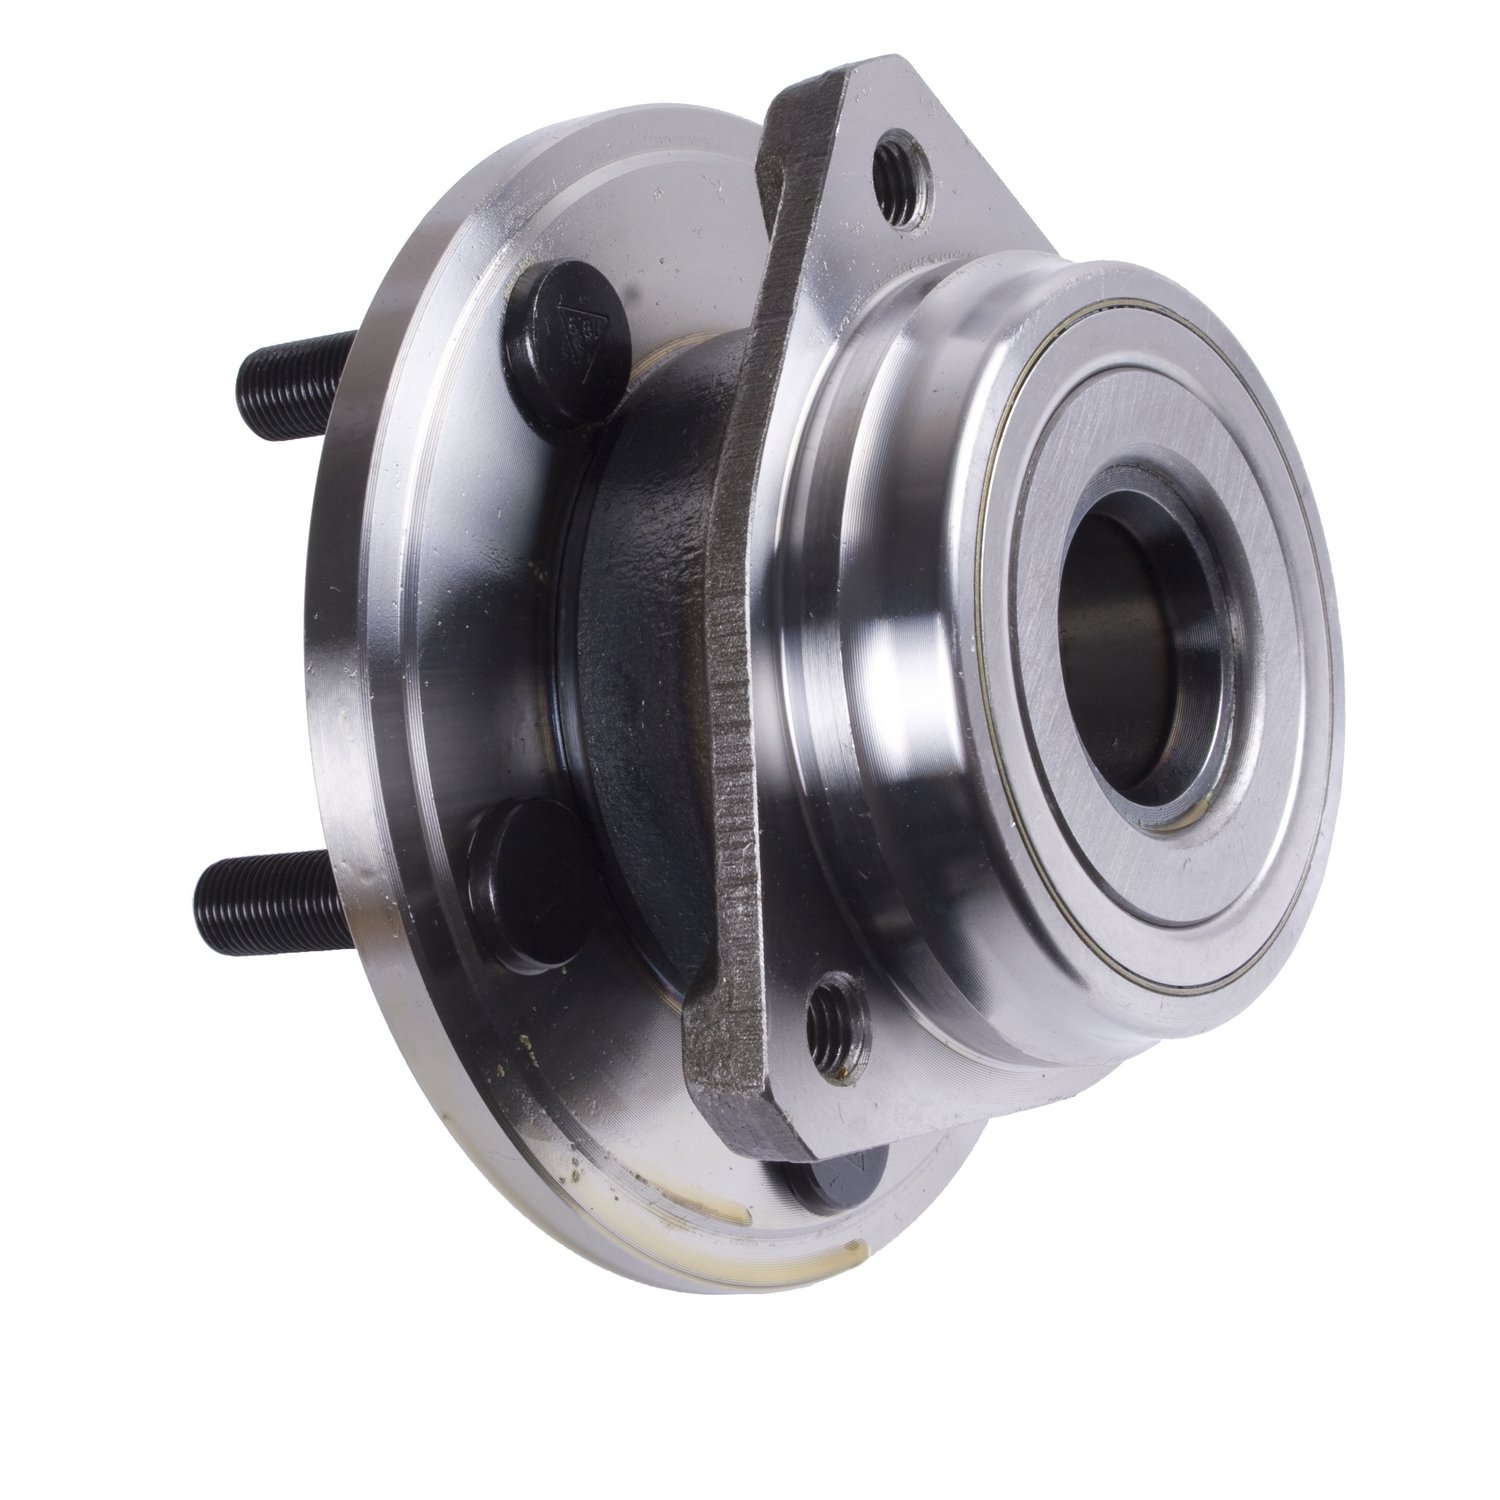 Alloy USA 35400 Axle Bearing Kit by Alloy USA (Image #1)